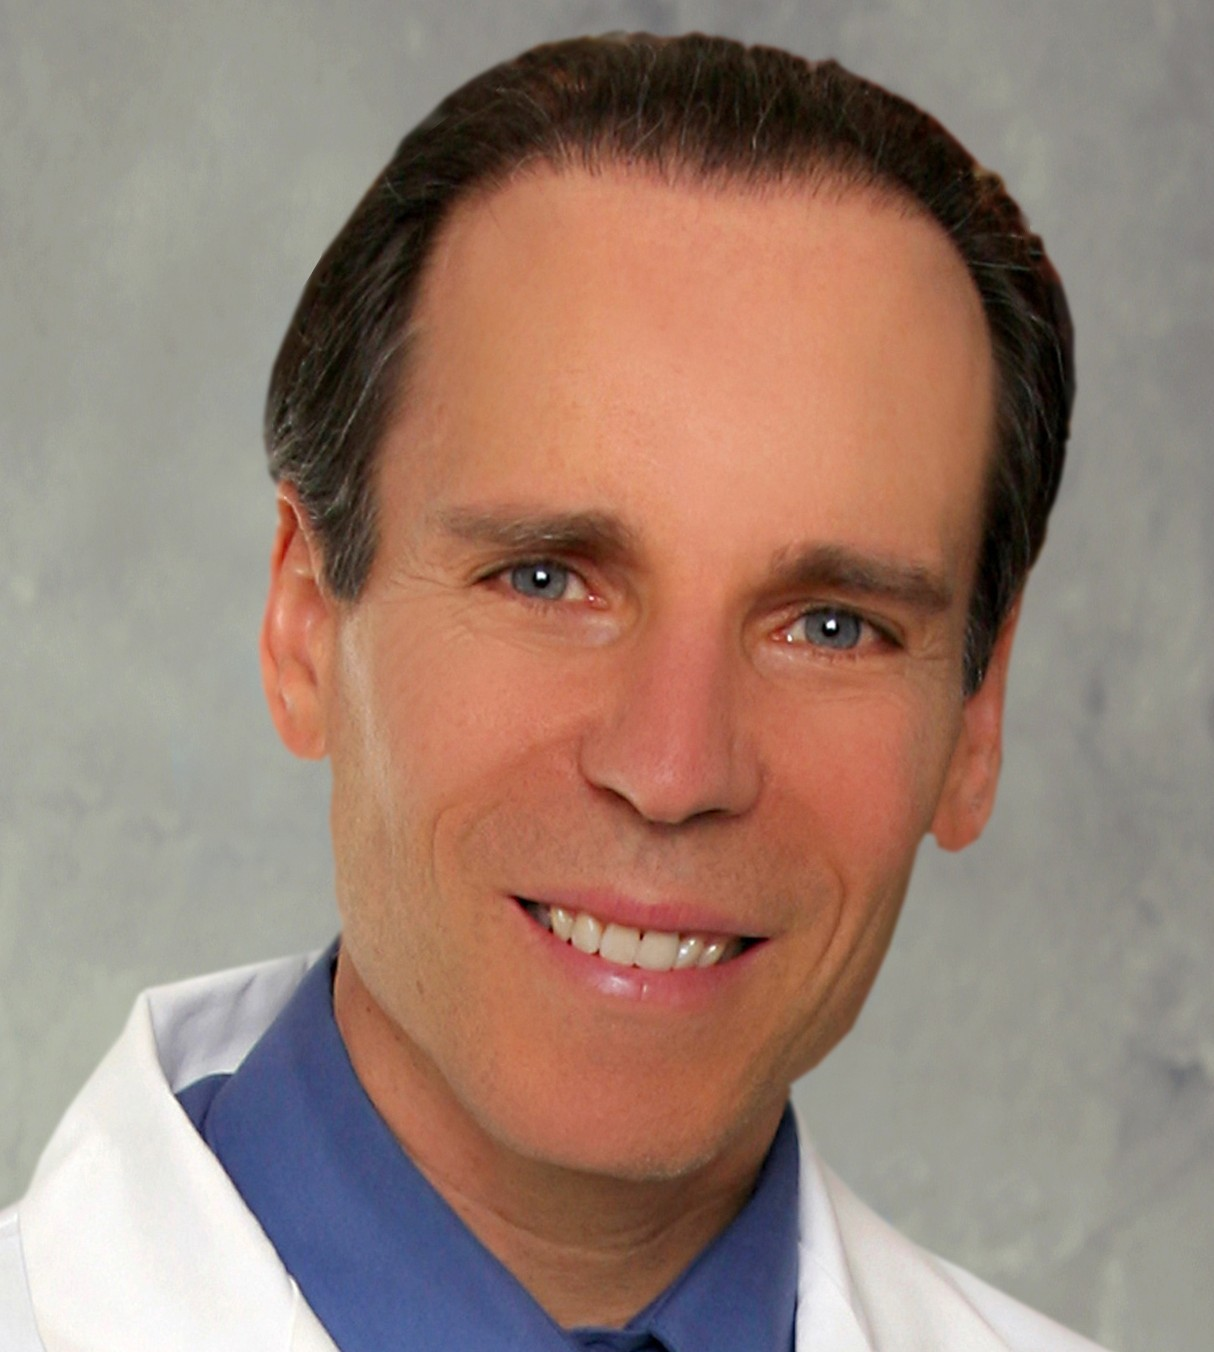 Dr. Fuhrman's Tips for a Healthy 2013